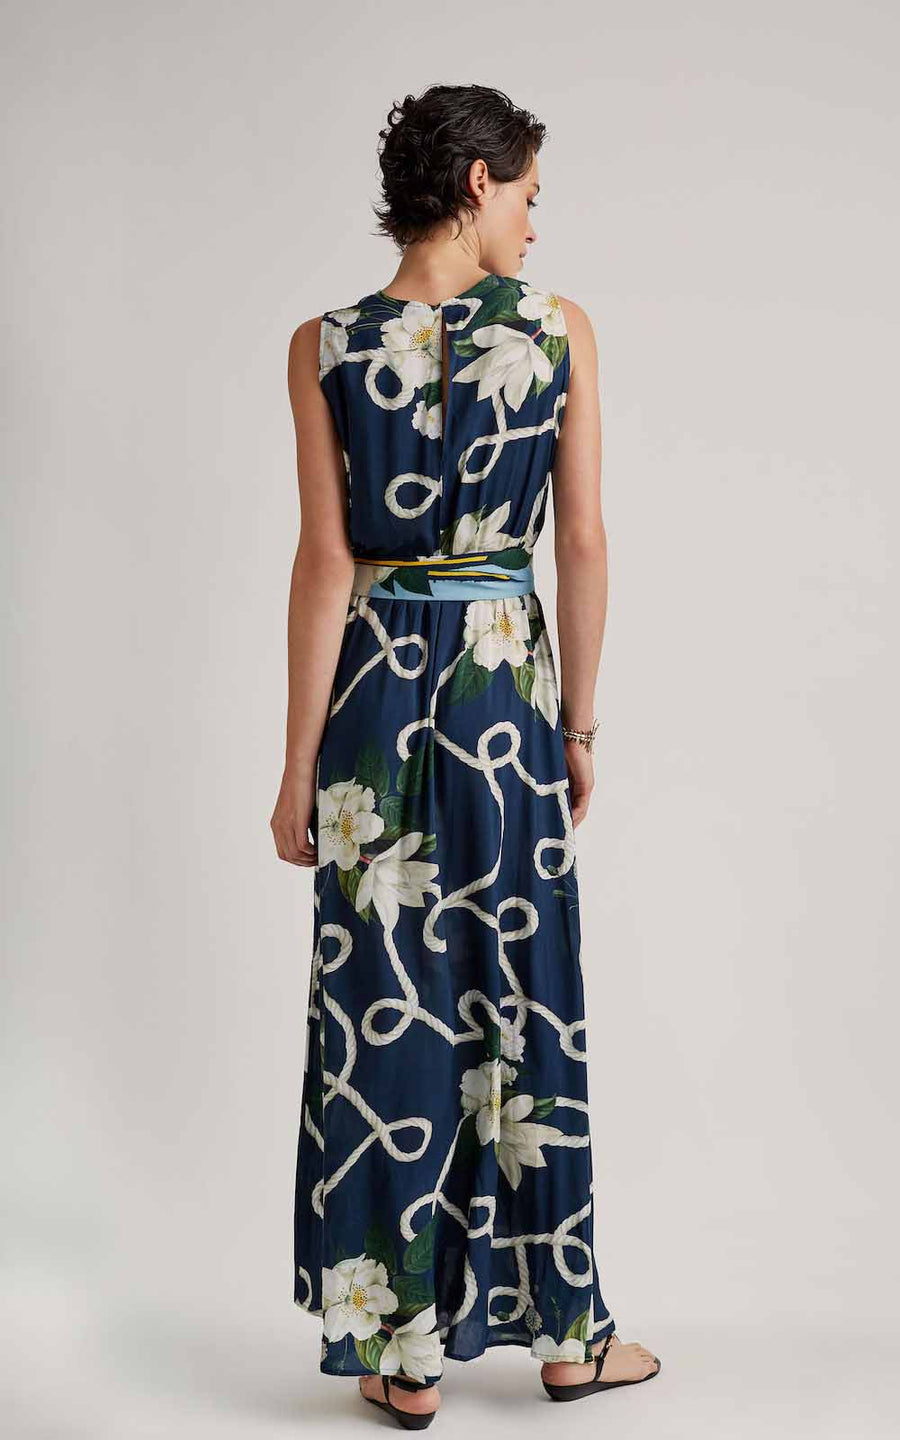 NAVY DEEP V NECKLINE MAXI DRESS